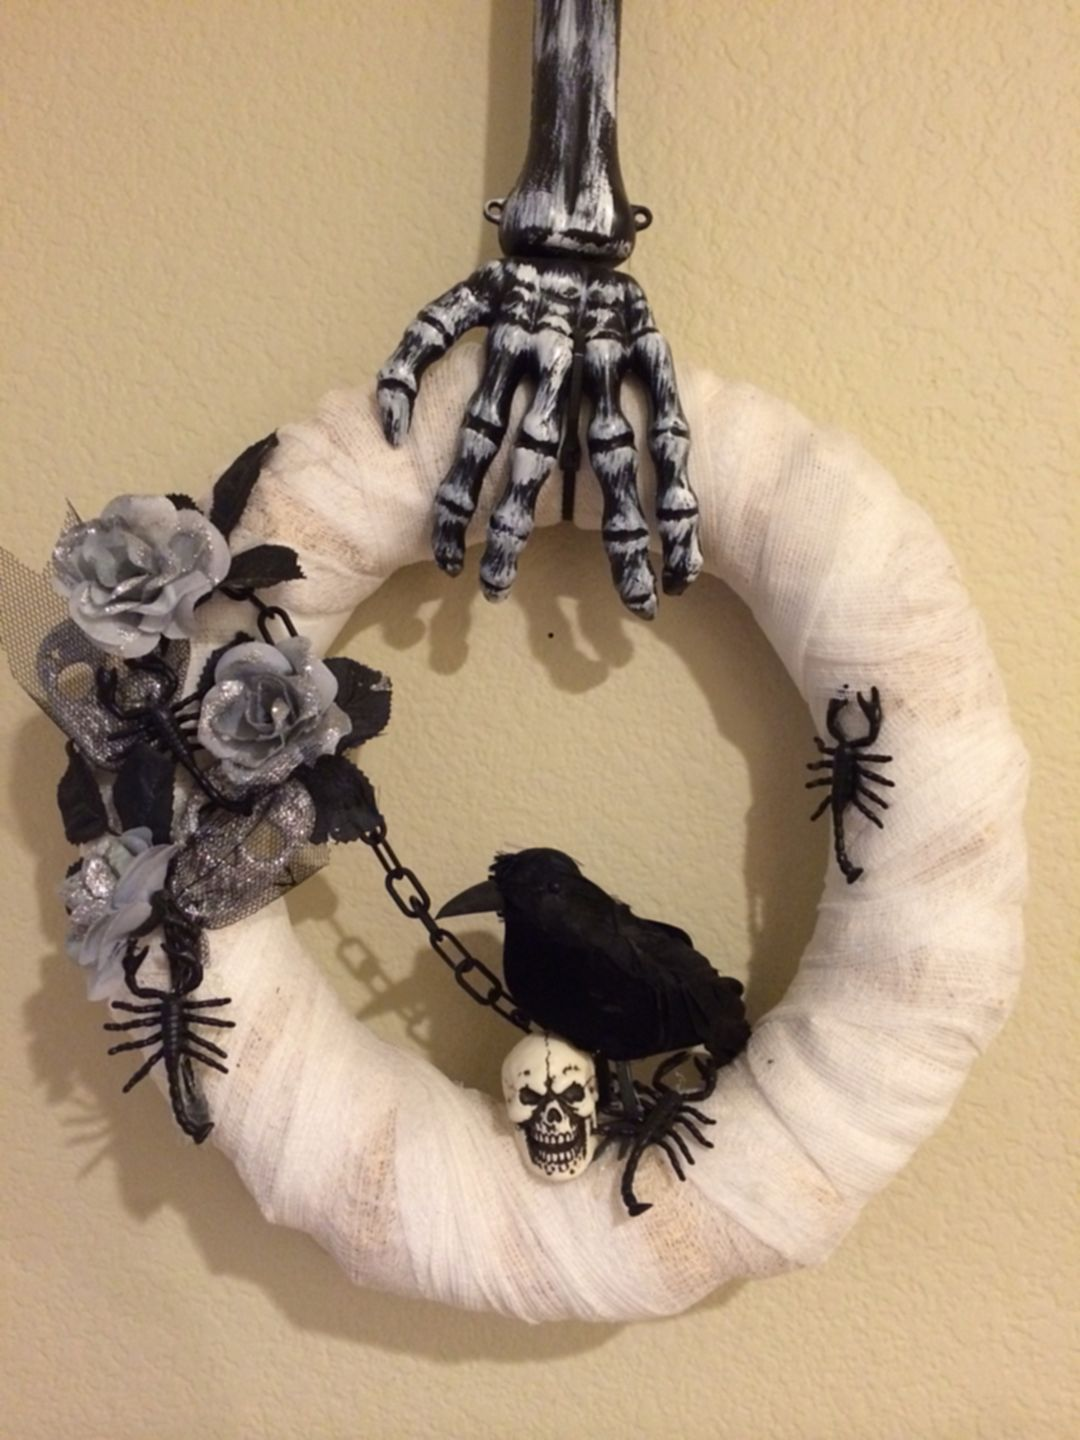 Cheap And Awesome Halloween Decor To Buy At Dollar Tree